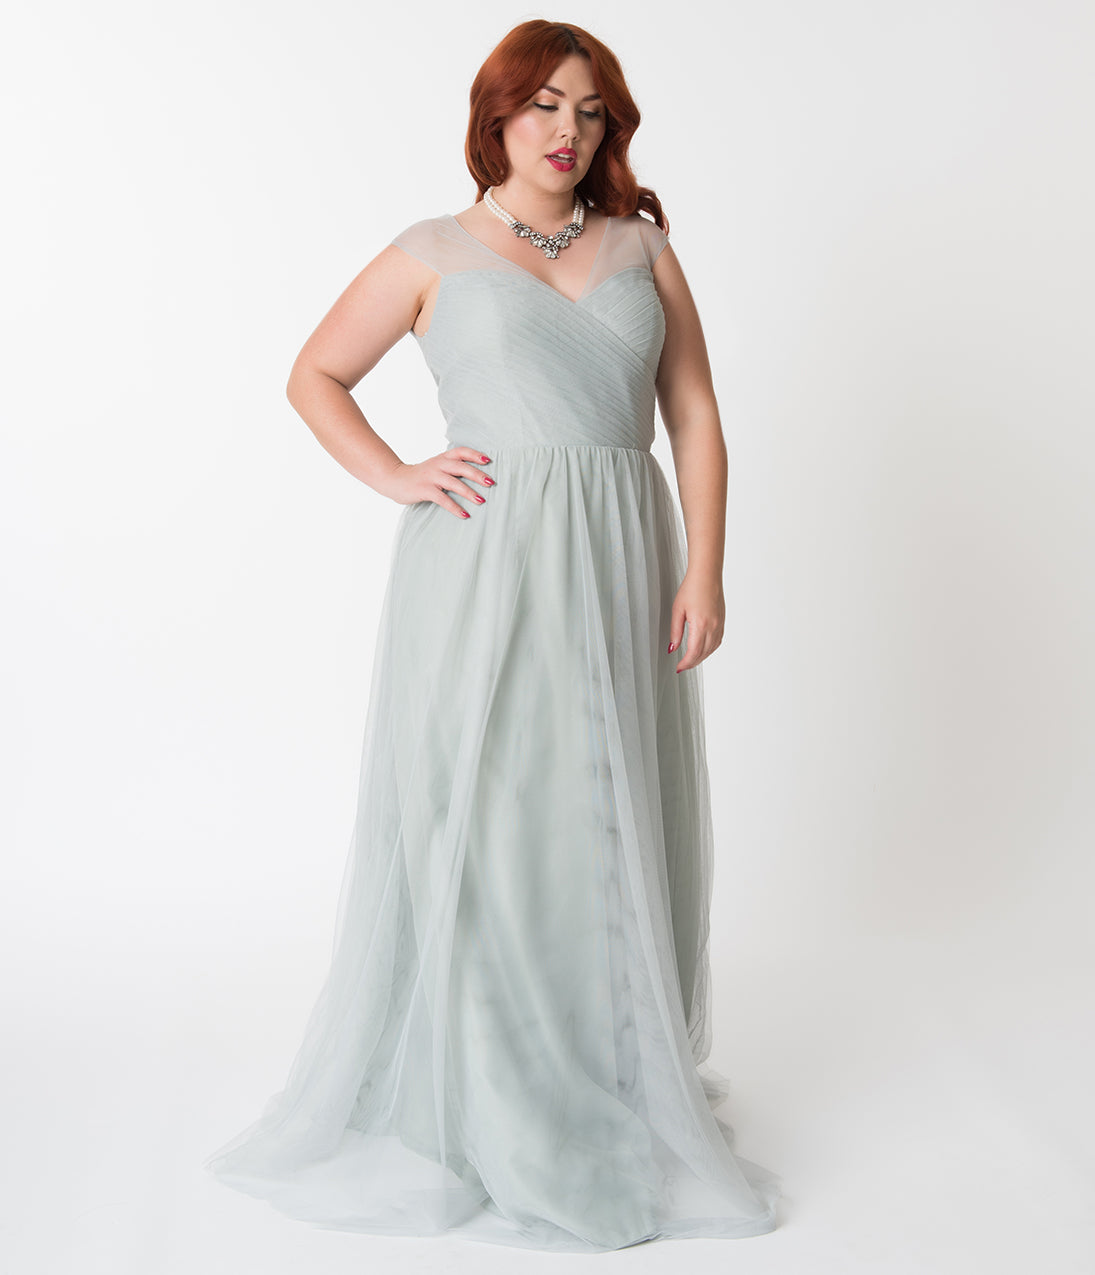 1940s Plus Size Dresses | Swing Dress, Tea Dress Plus Size Eucalyptus Green Mesh Wrapped Sweetheart Neckline Long Dress $110.00 AT vintagedancer.com